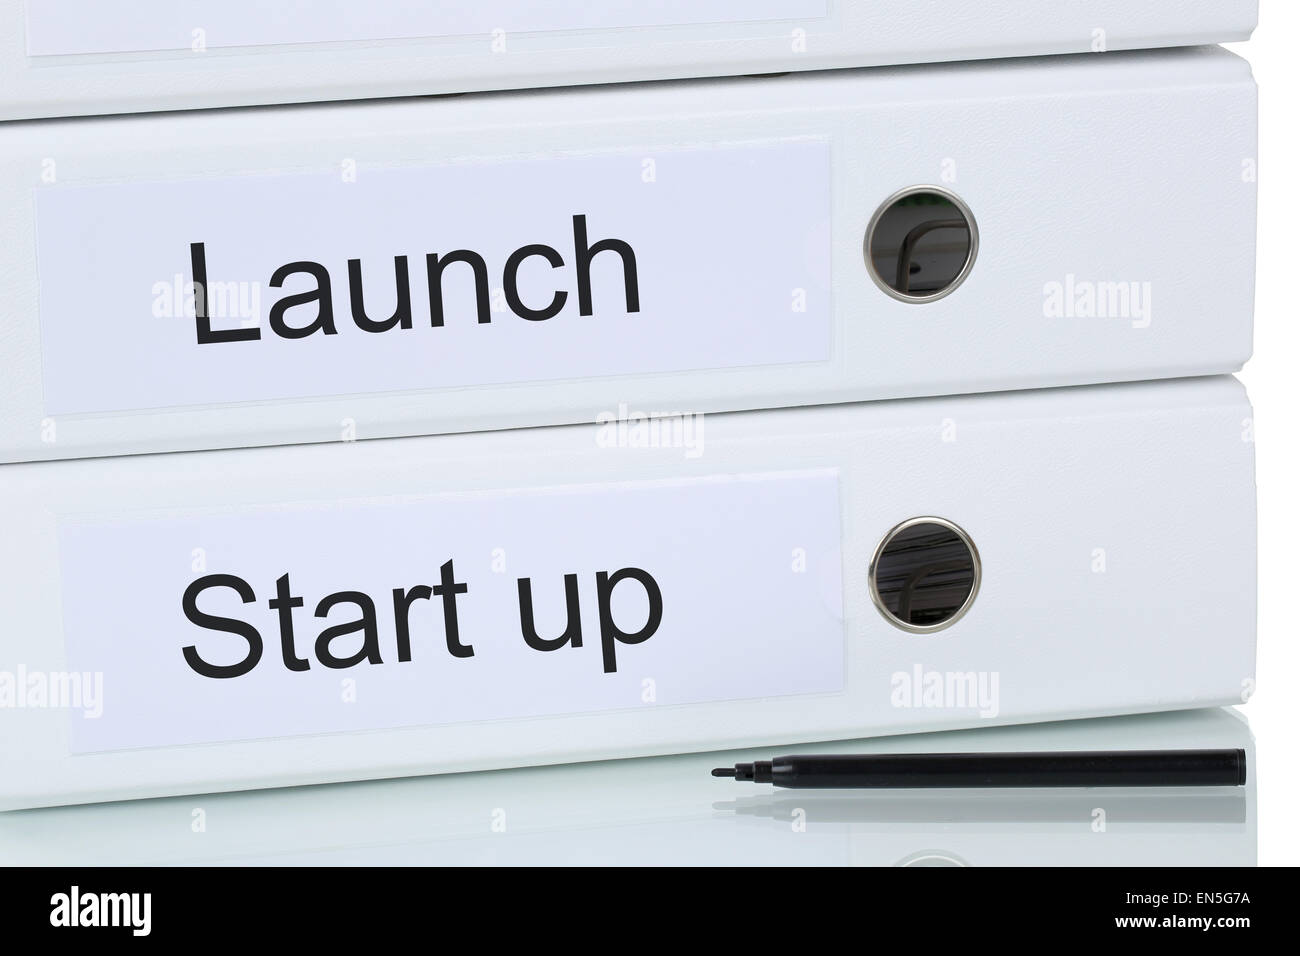 Launch of a start up business company concept for success and growth - Stock Image